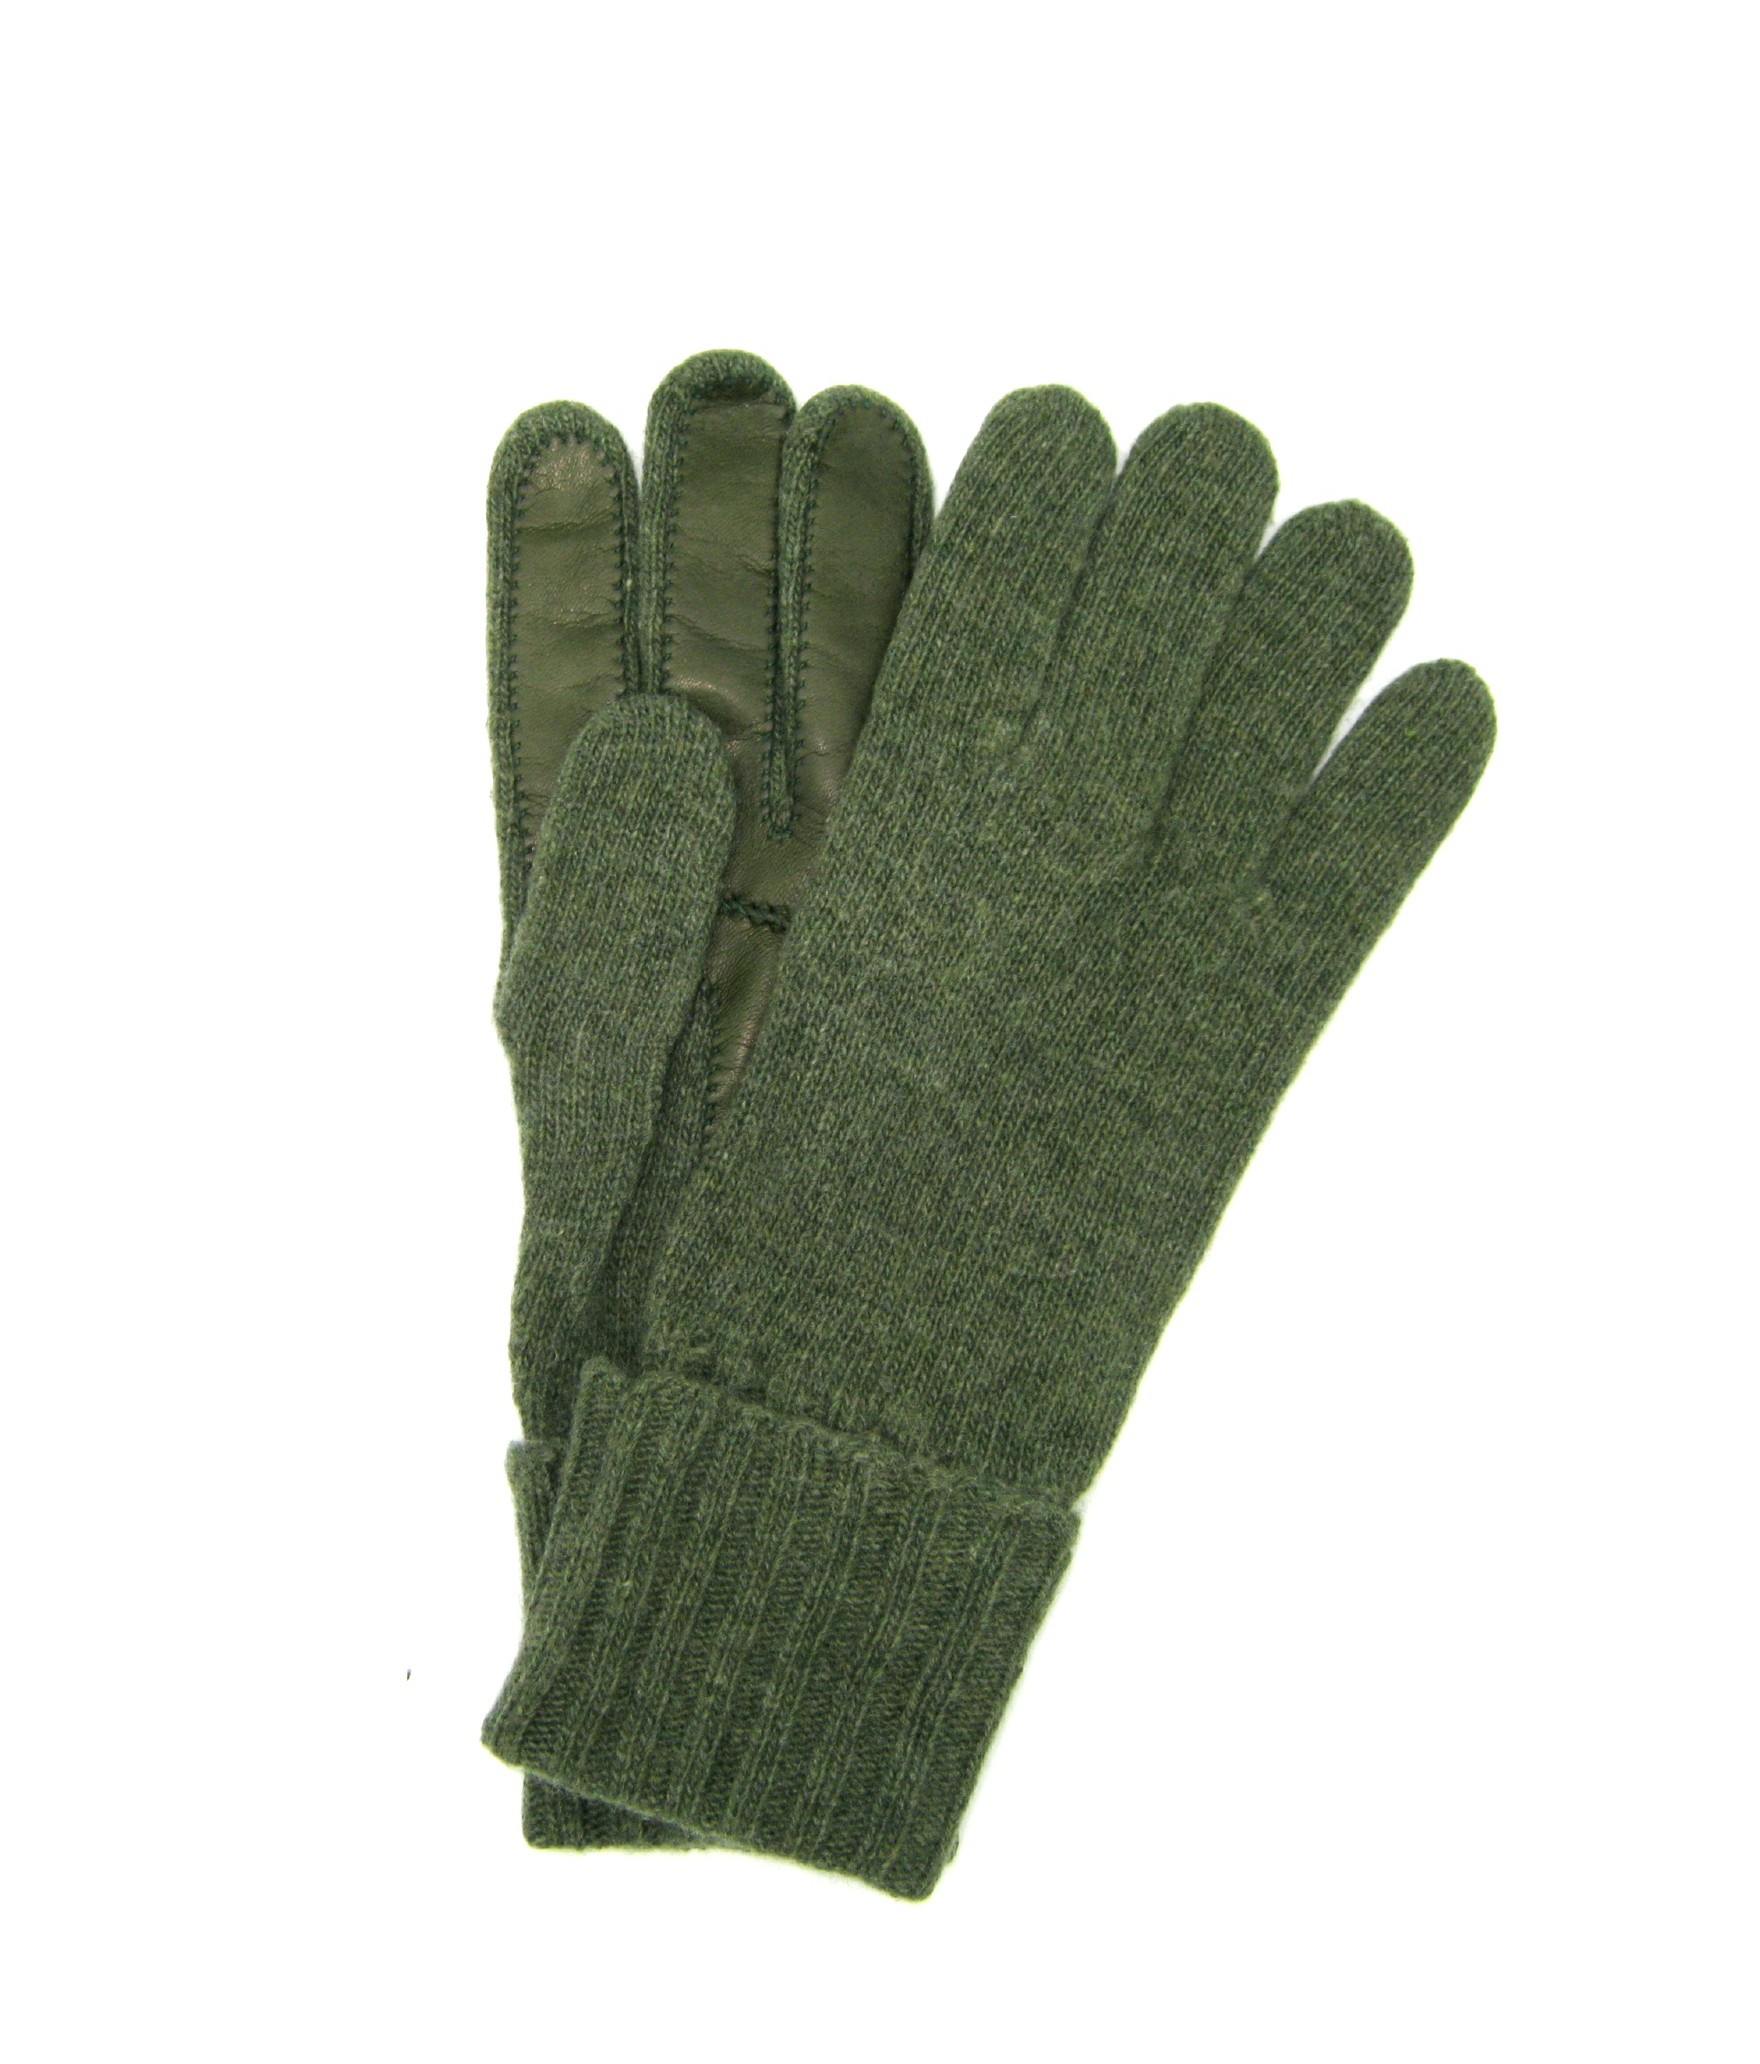 100%cashmere gloves 2bt with Nappa leather palm Olive Green